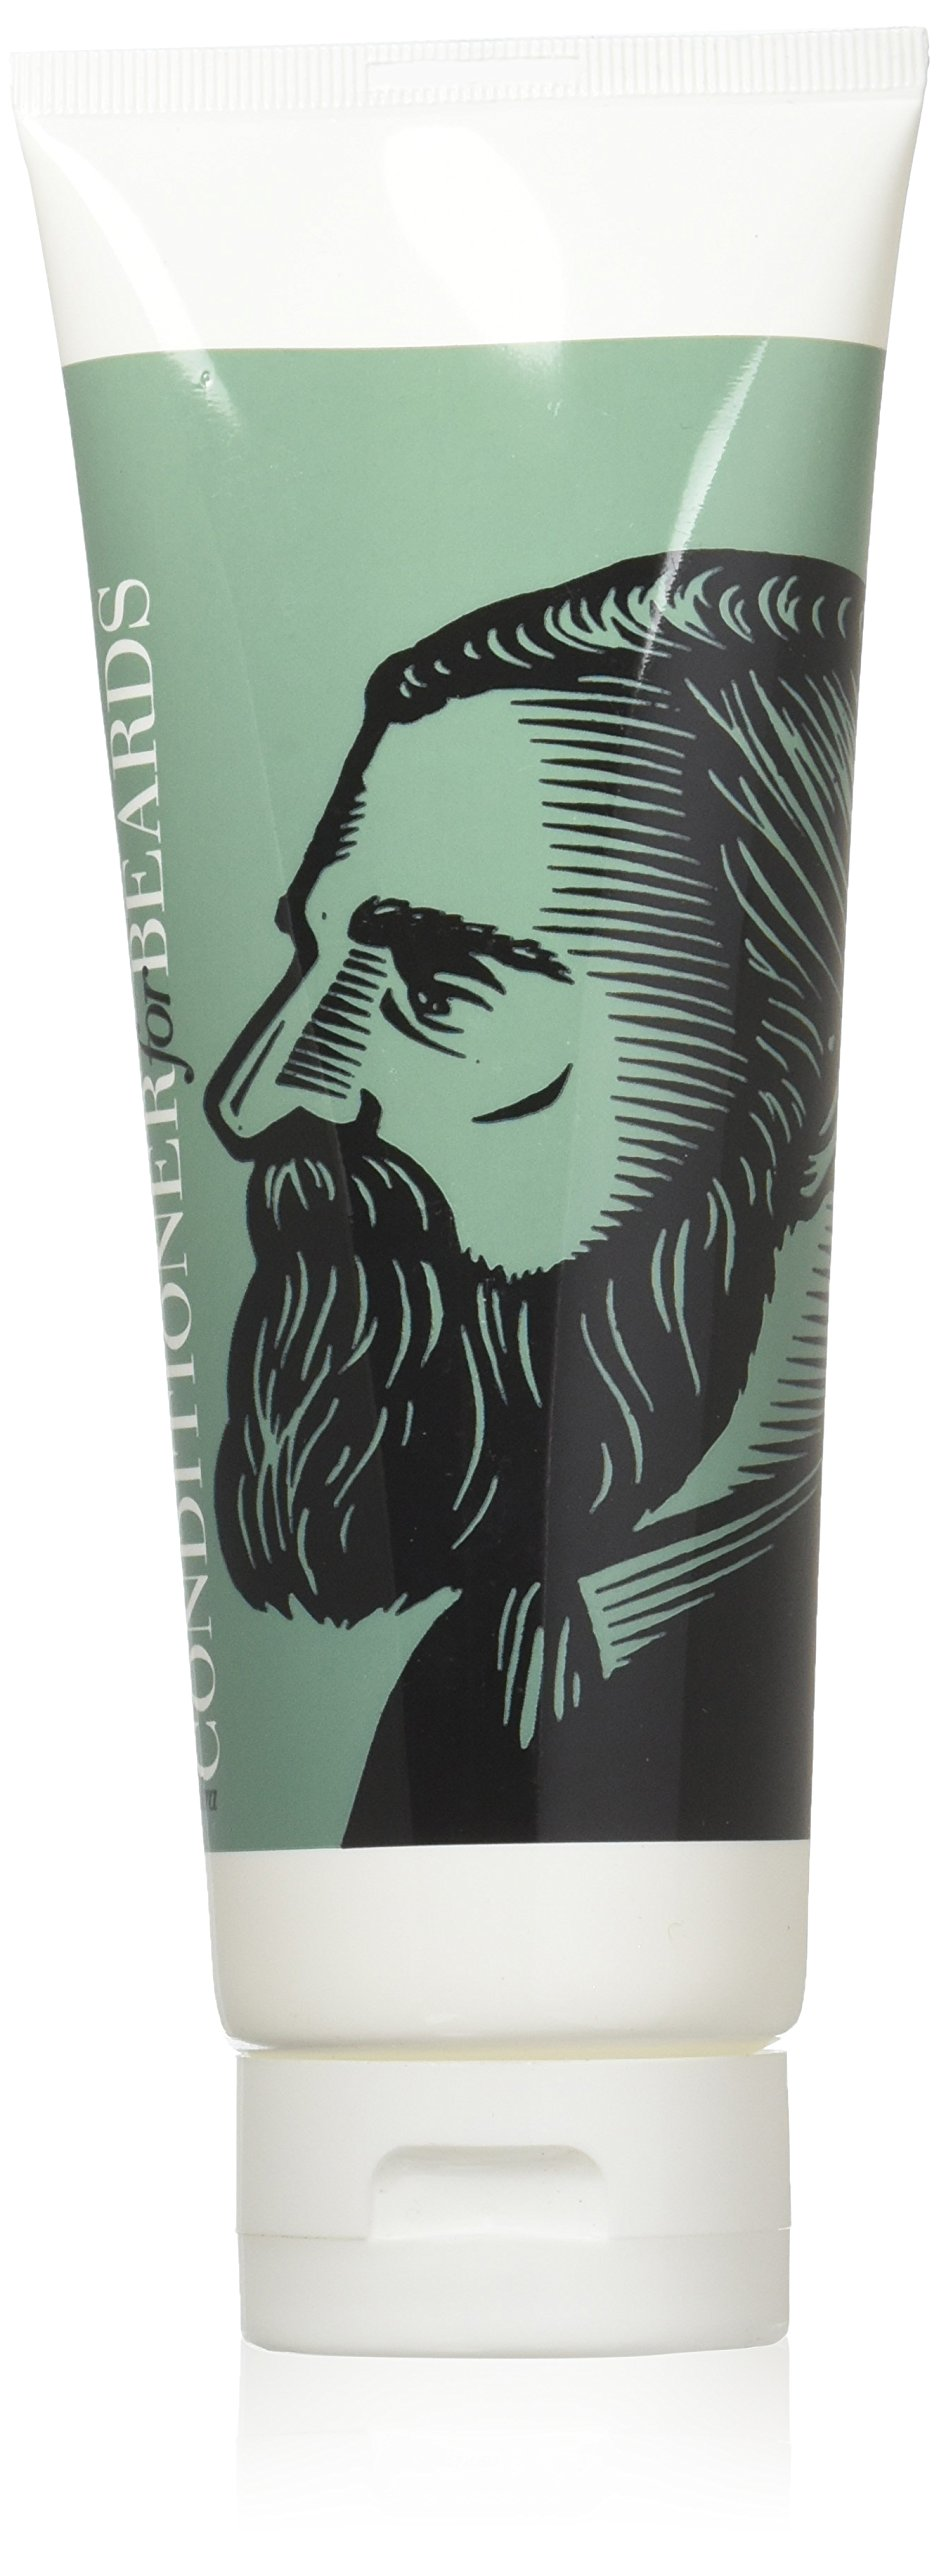 Ultra Conditioner/Softener for Beards by Beardsley and Company, Beard Care Products, 8 oz